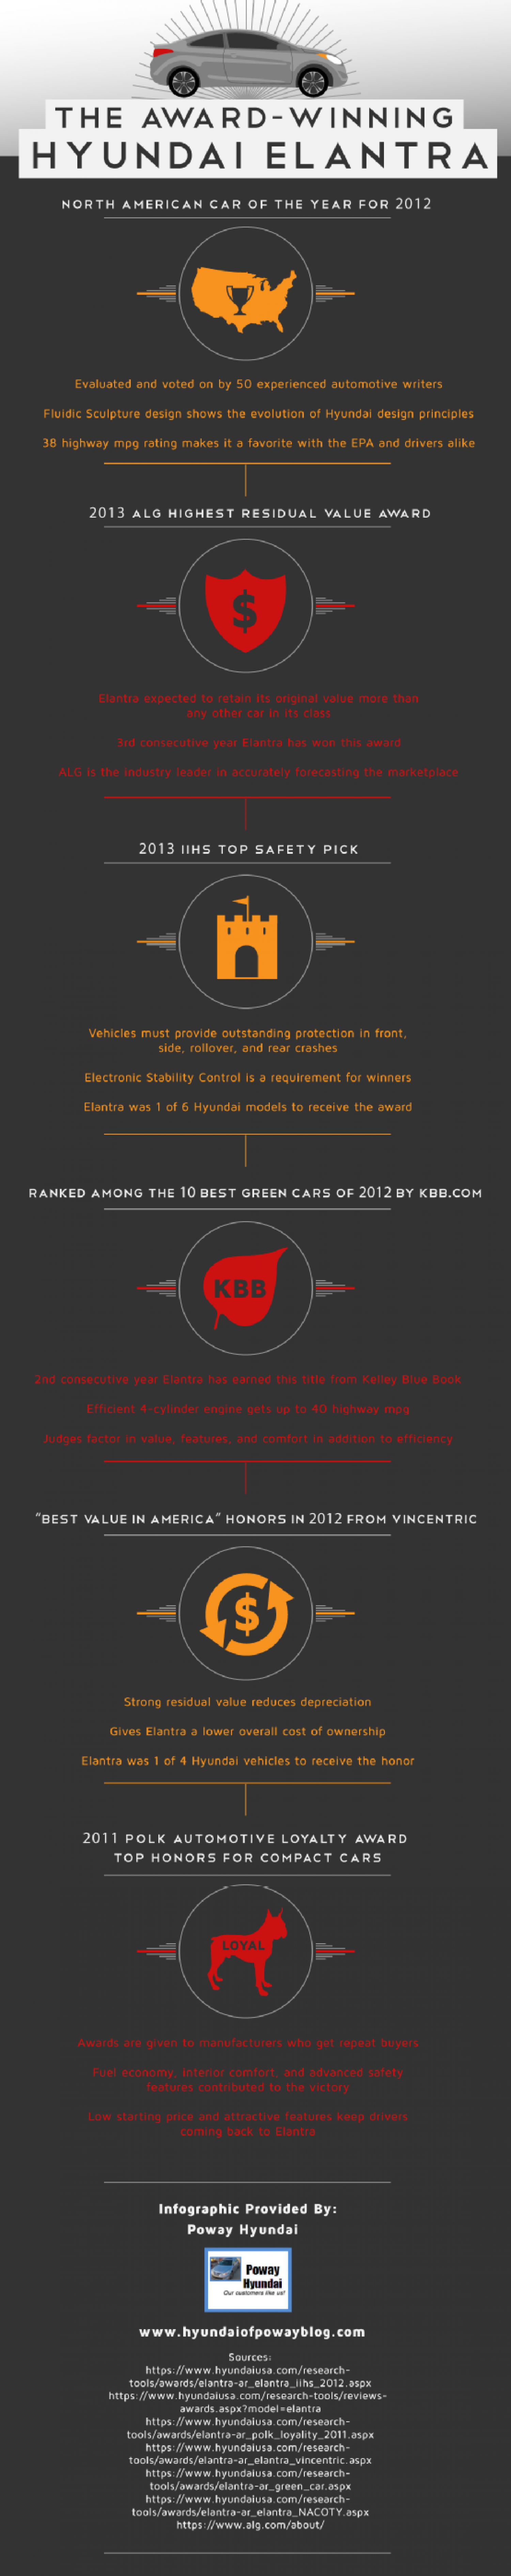 The Award-Winning Hyundai Elantra Infographic